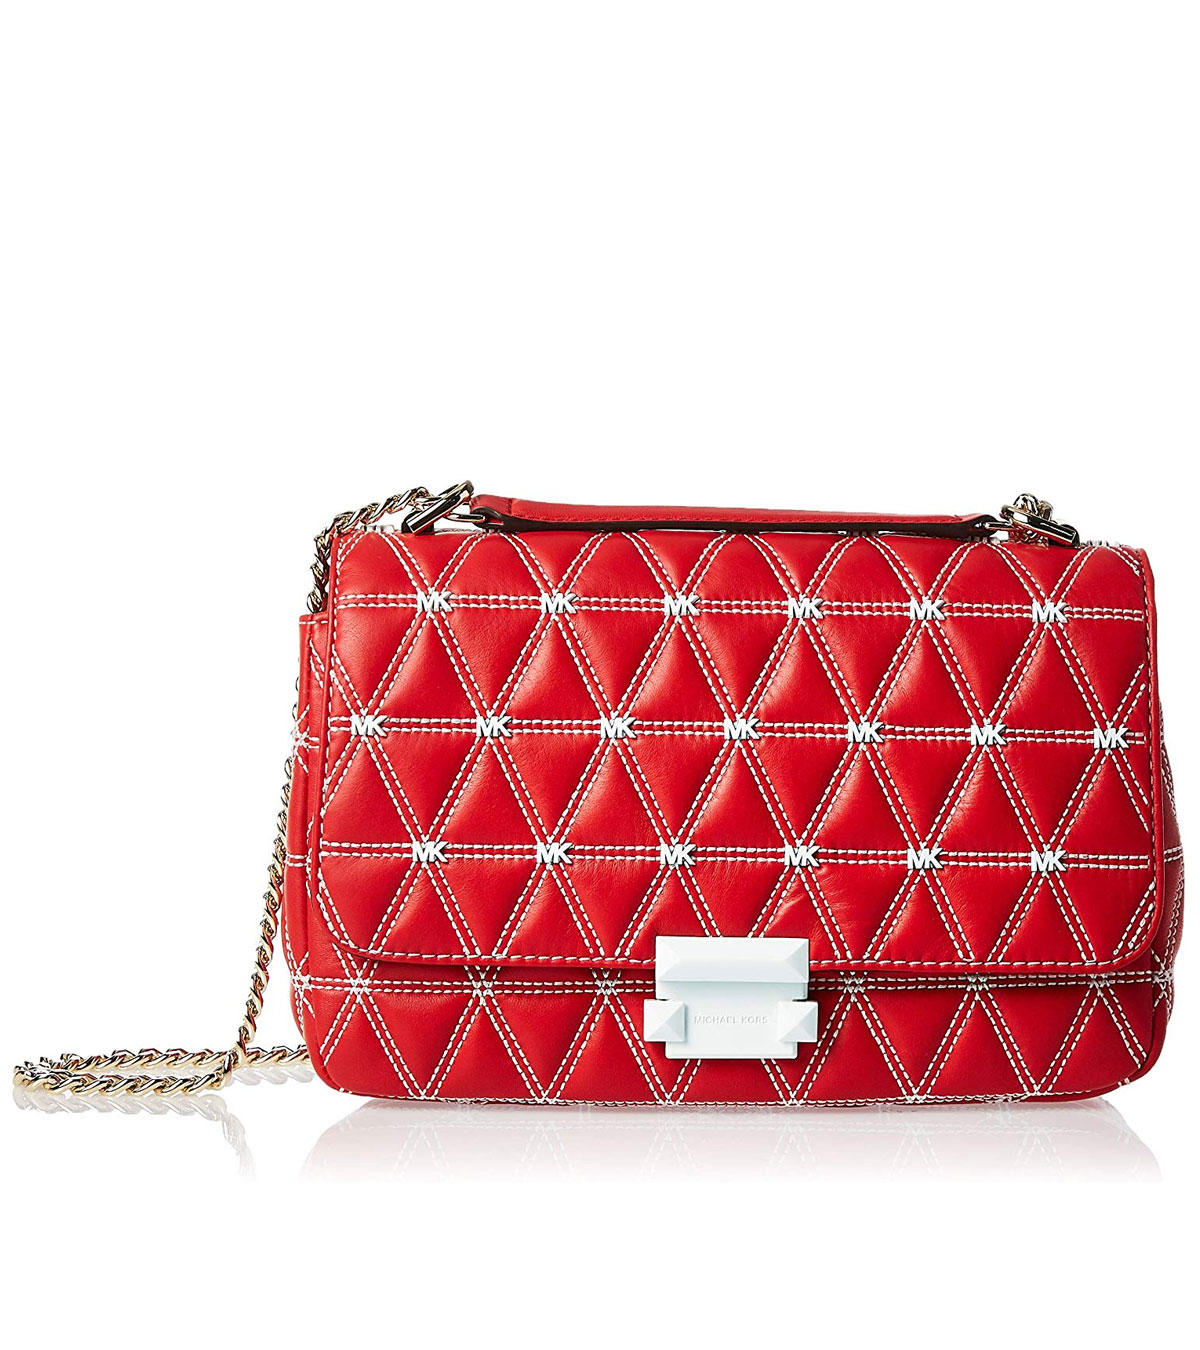 Michael Kors Quilted Leather Sloan